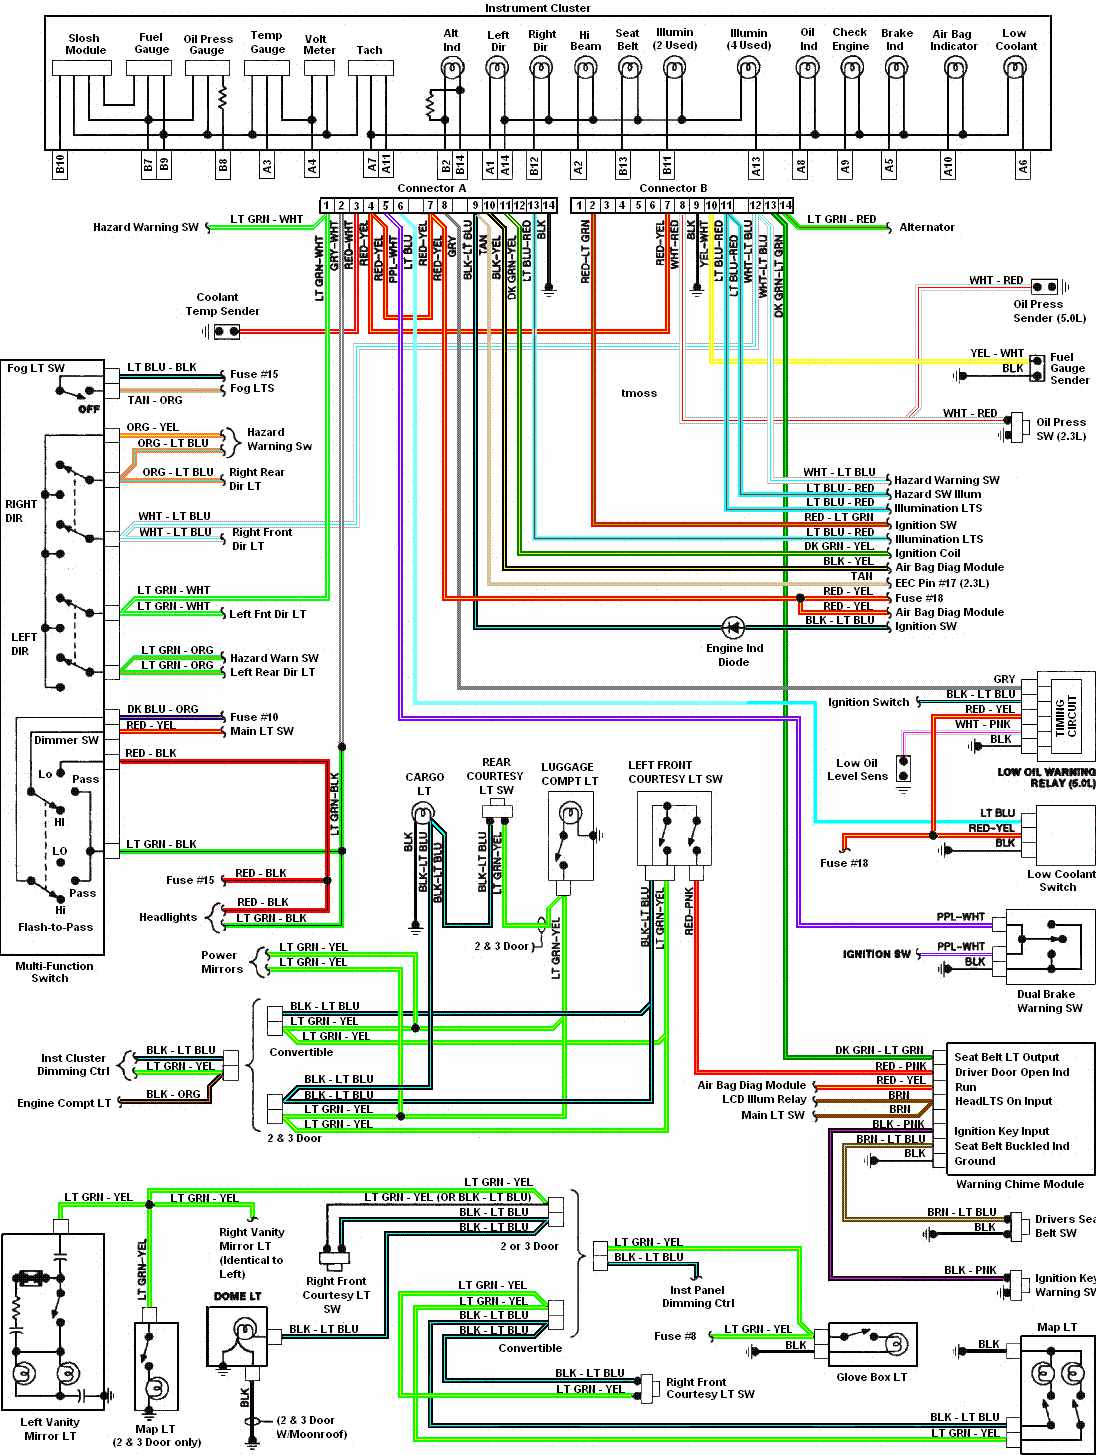 2003 Chevy S10 Stereo Wiring Diagram Chevy Factory Radio Wiring – 2000 Chevy S10 Wiring Diagram